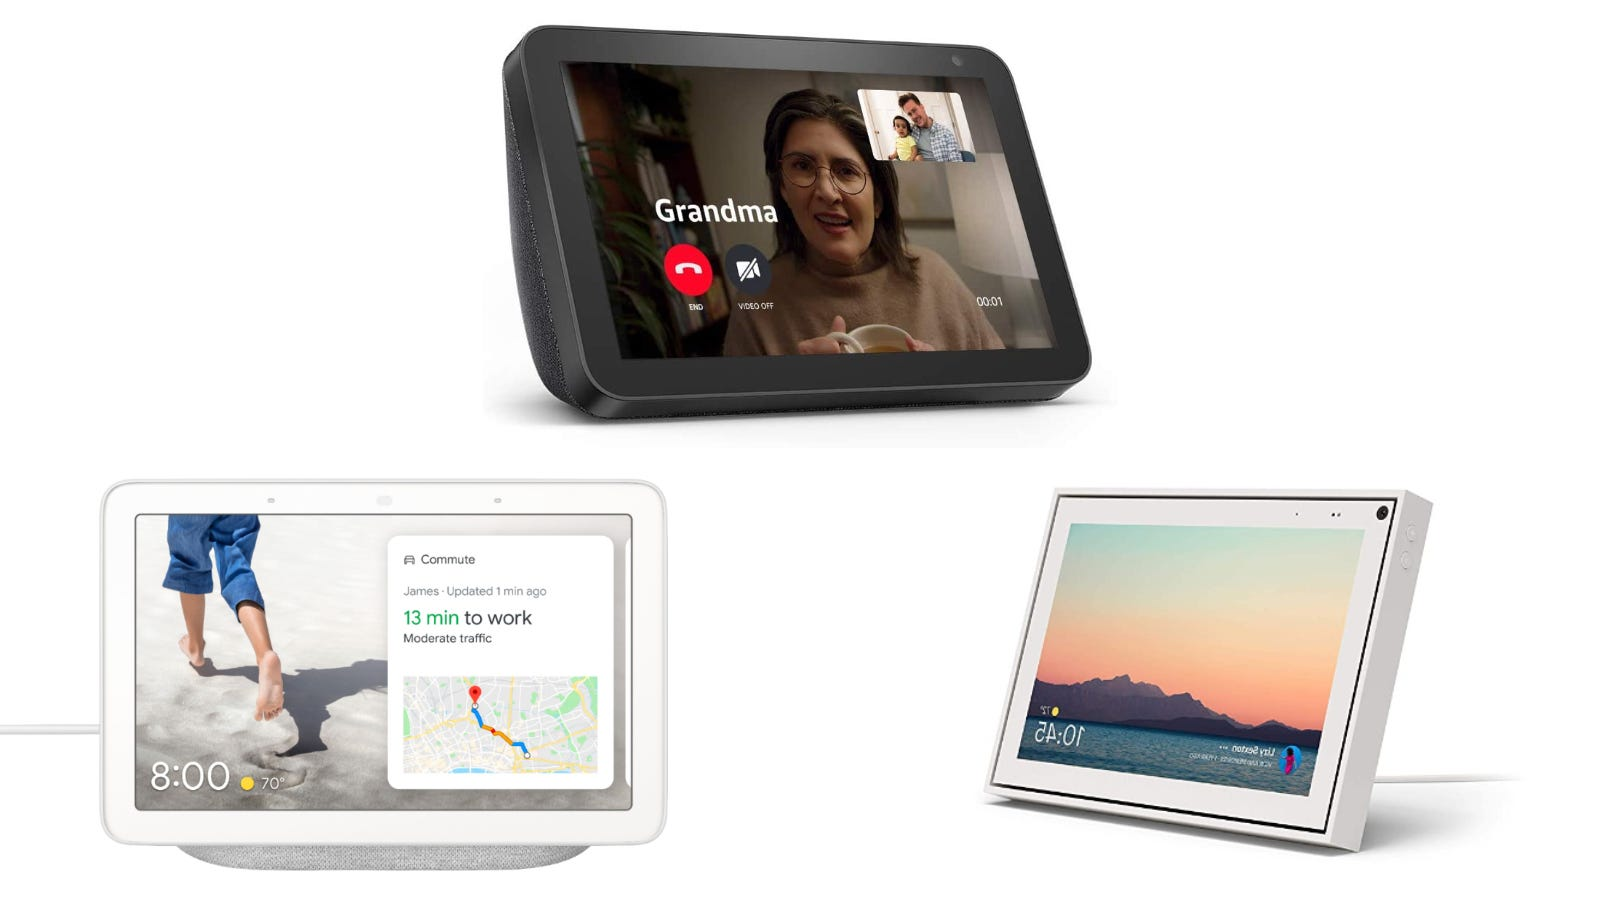 Google Nest Hub, Amazon Echo Show 8, and Facebook Portal against a white background